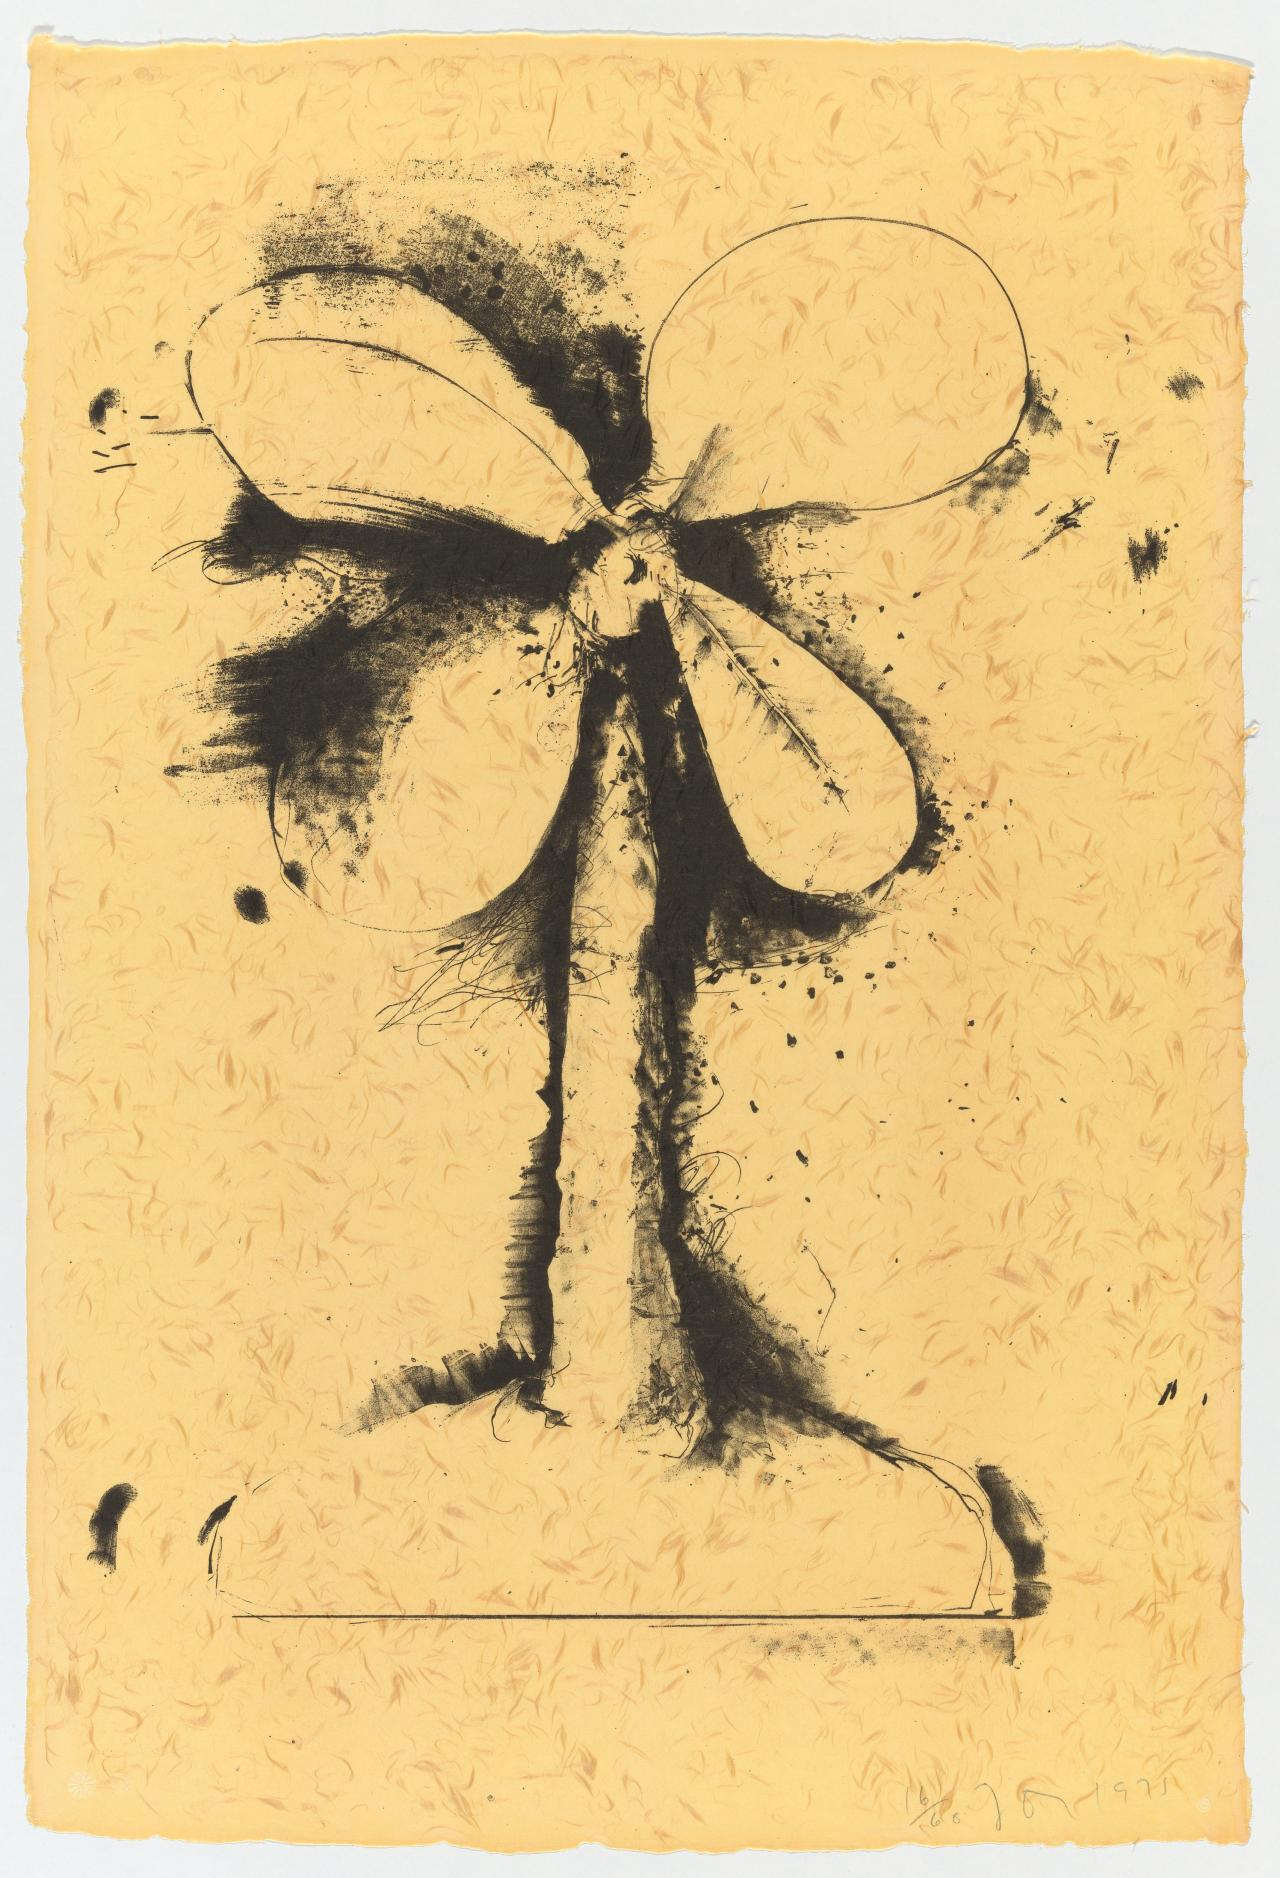 Lithographs of the sculpture: the plant becomes a fan 3